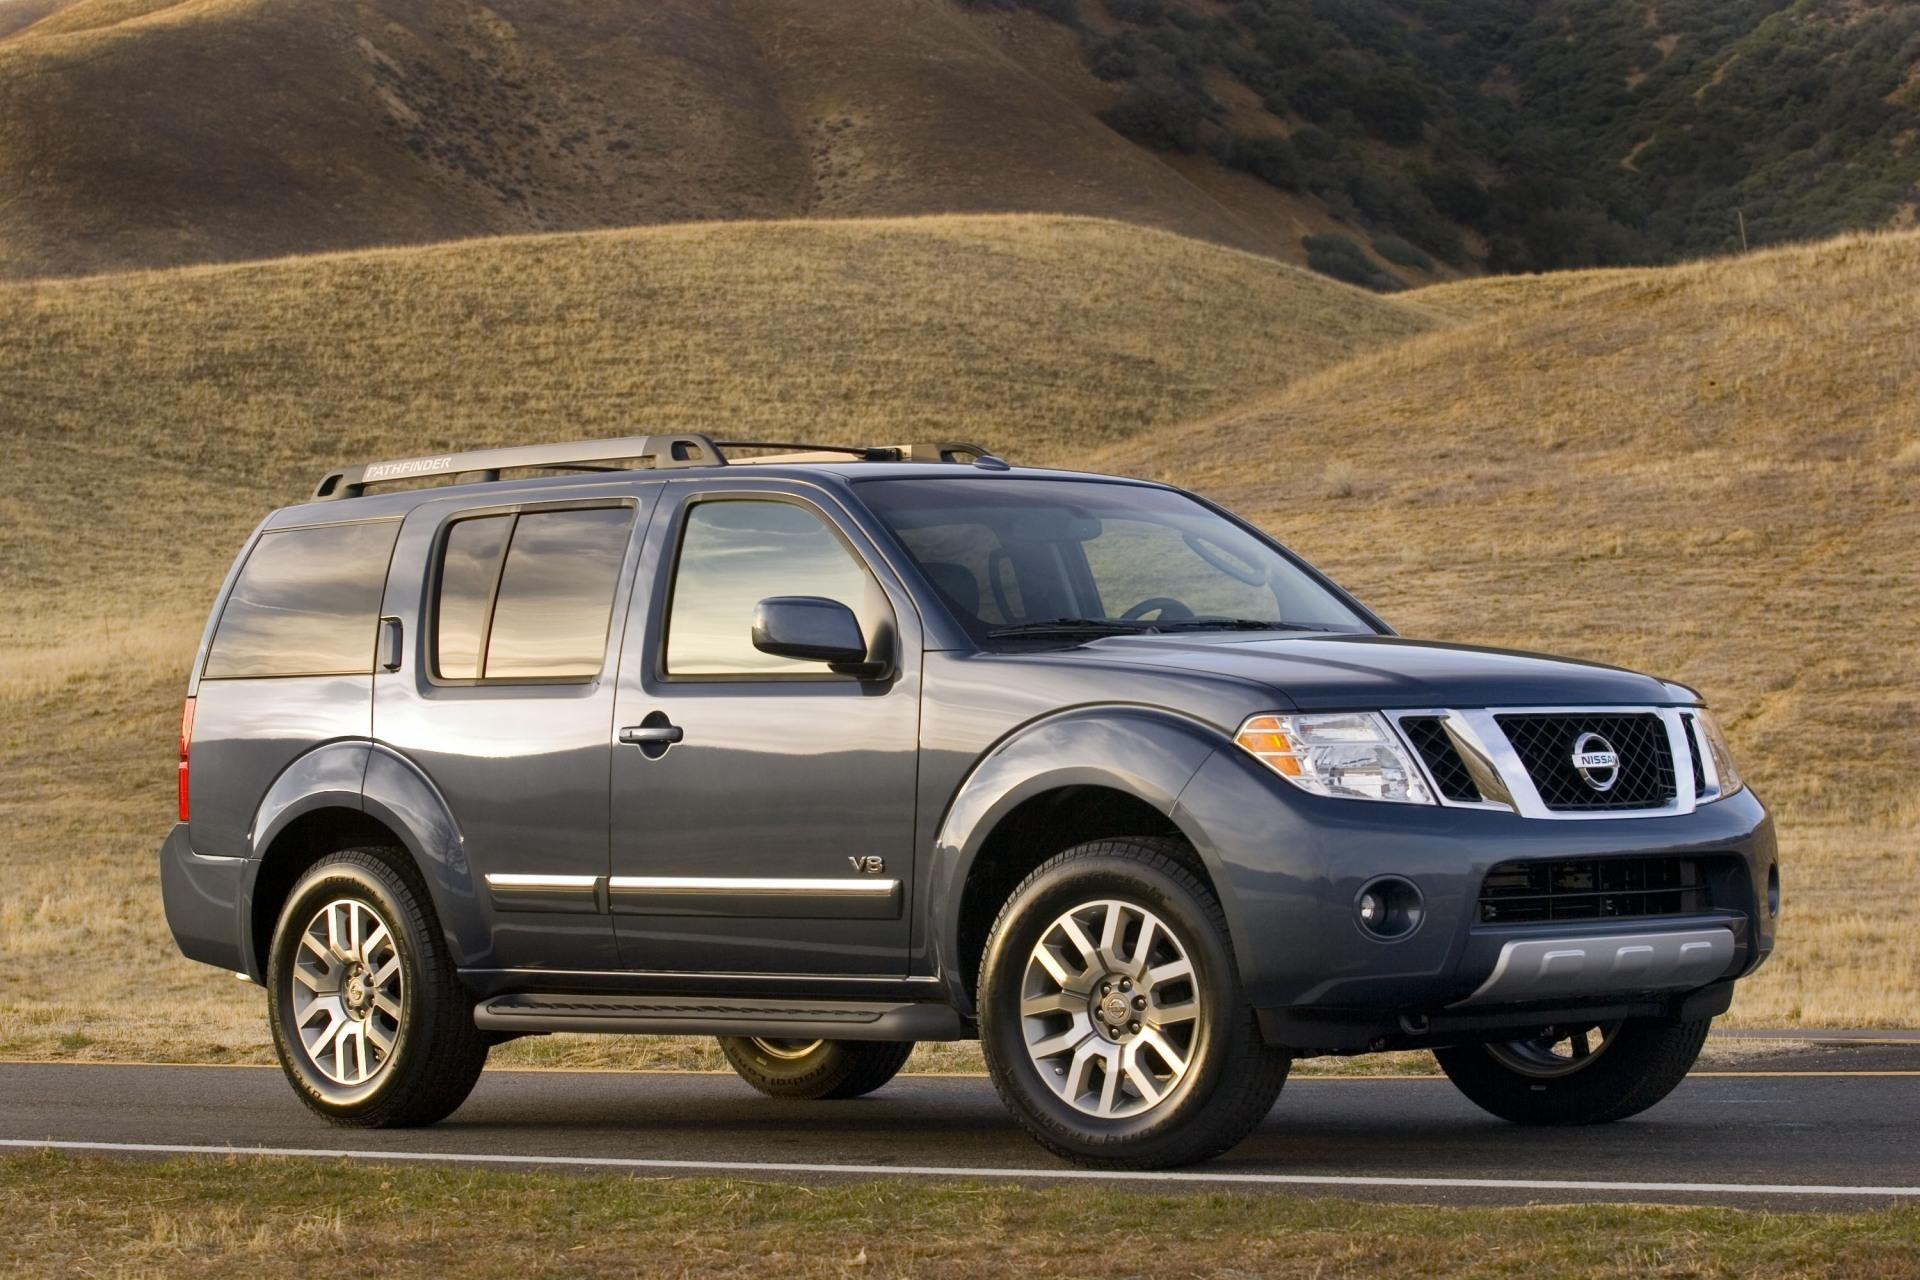 2011 nissan pathfinder. Black Bedroom Furniture Sets. Home Design Ideas